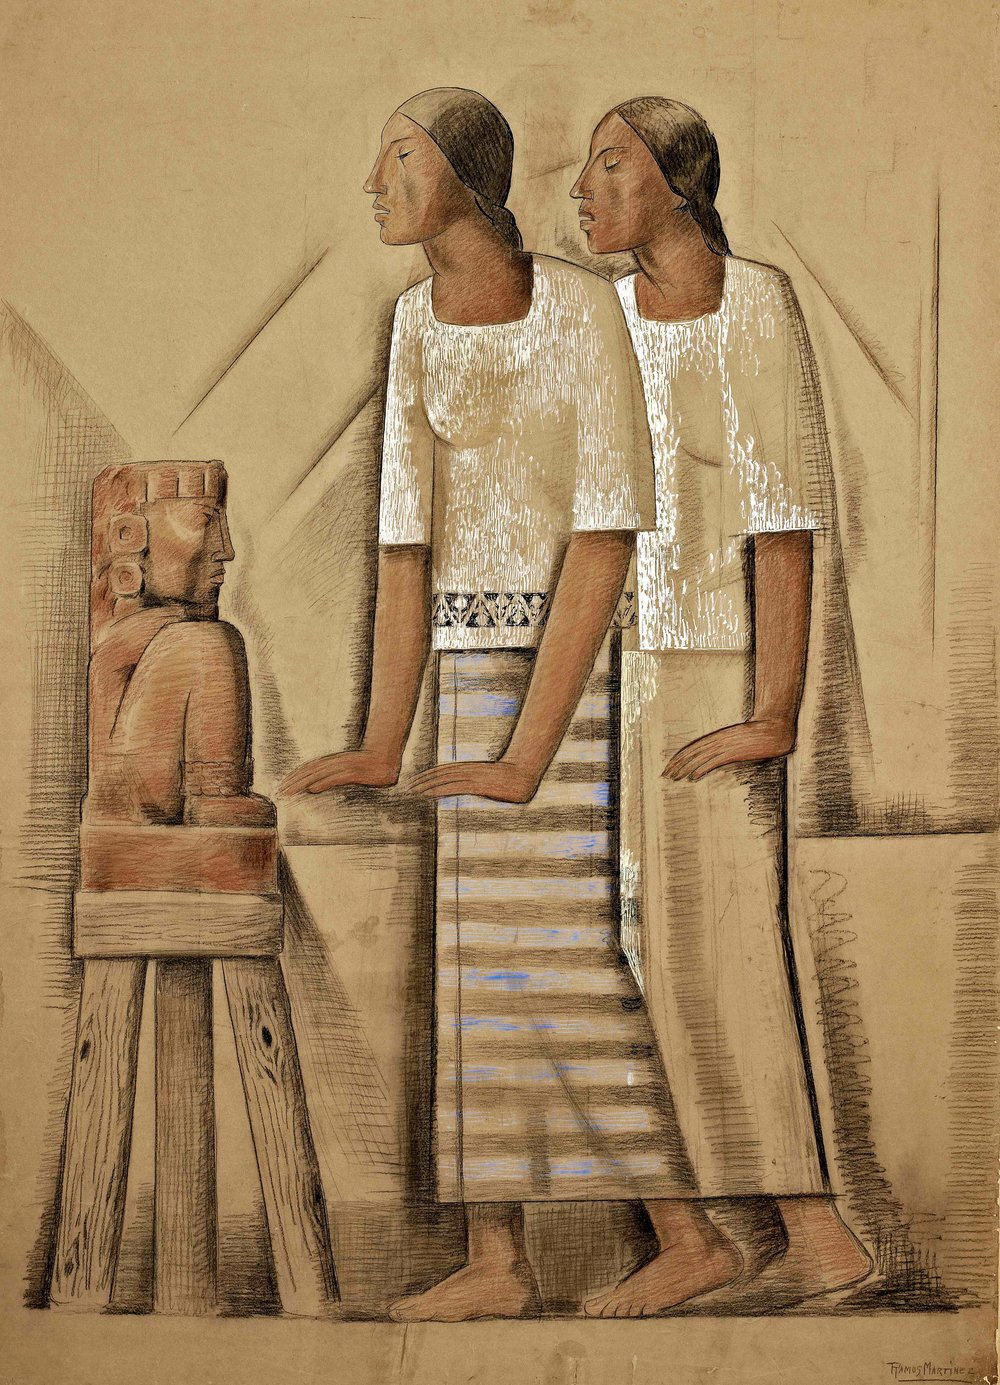 Dos Mujeres Ante el Ídolo / Two Women Before an Idol  ca. 1935 tempera and Conté crayon on paper mounted on board / temple y crayon Conté sobre papel sobre tabla 68.8 x 48 inches; 174.6 x 121.9 centímetros Private collection